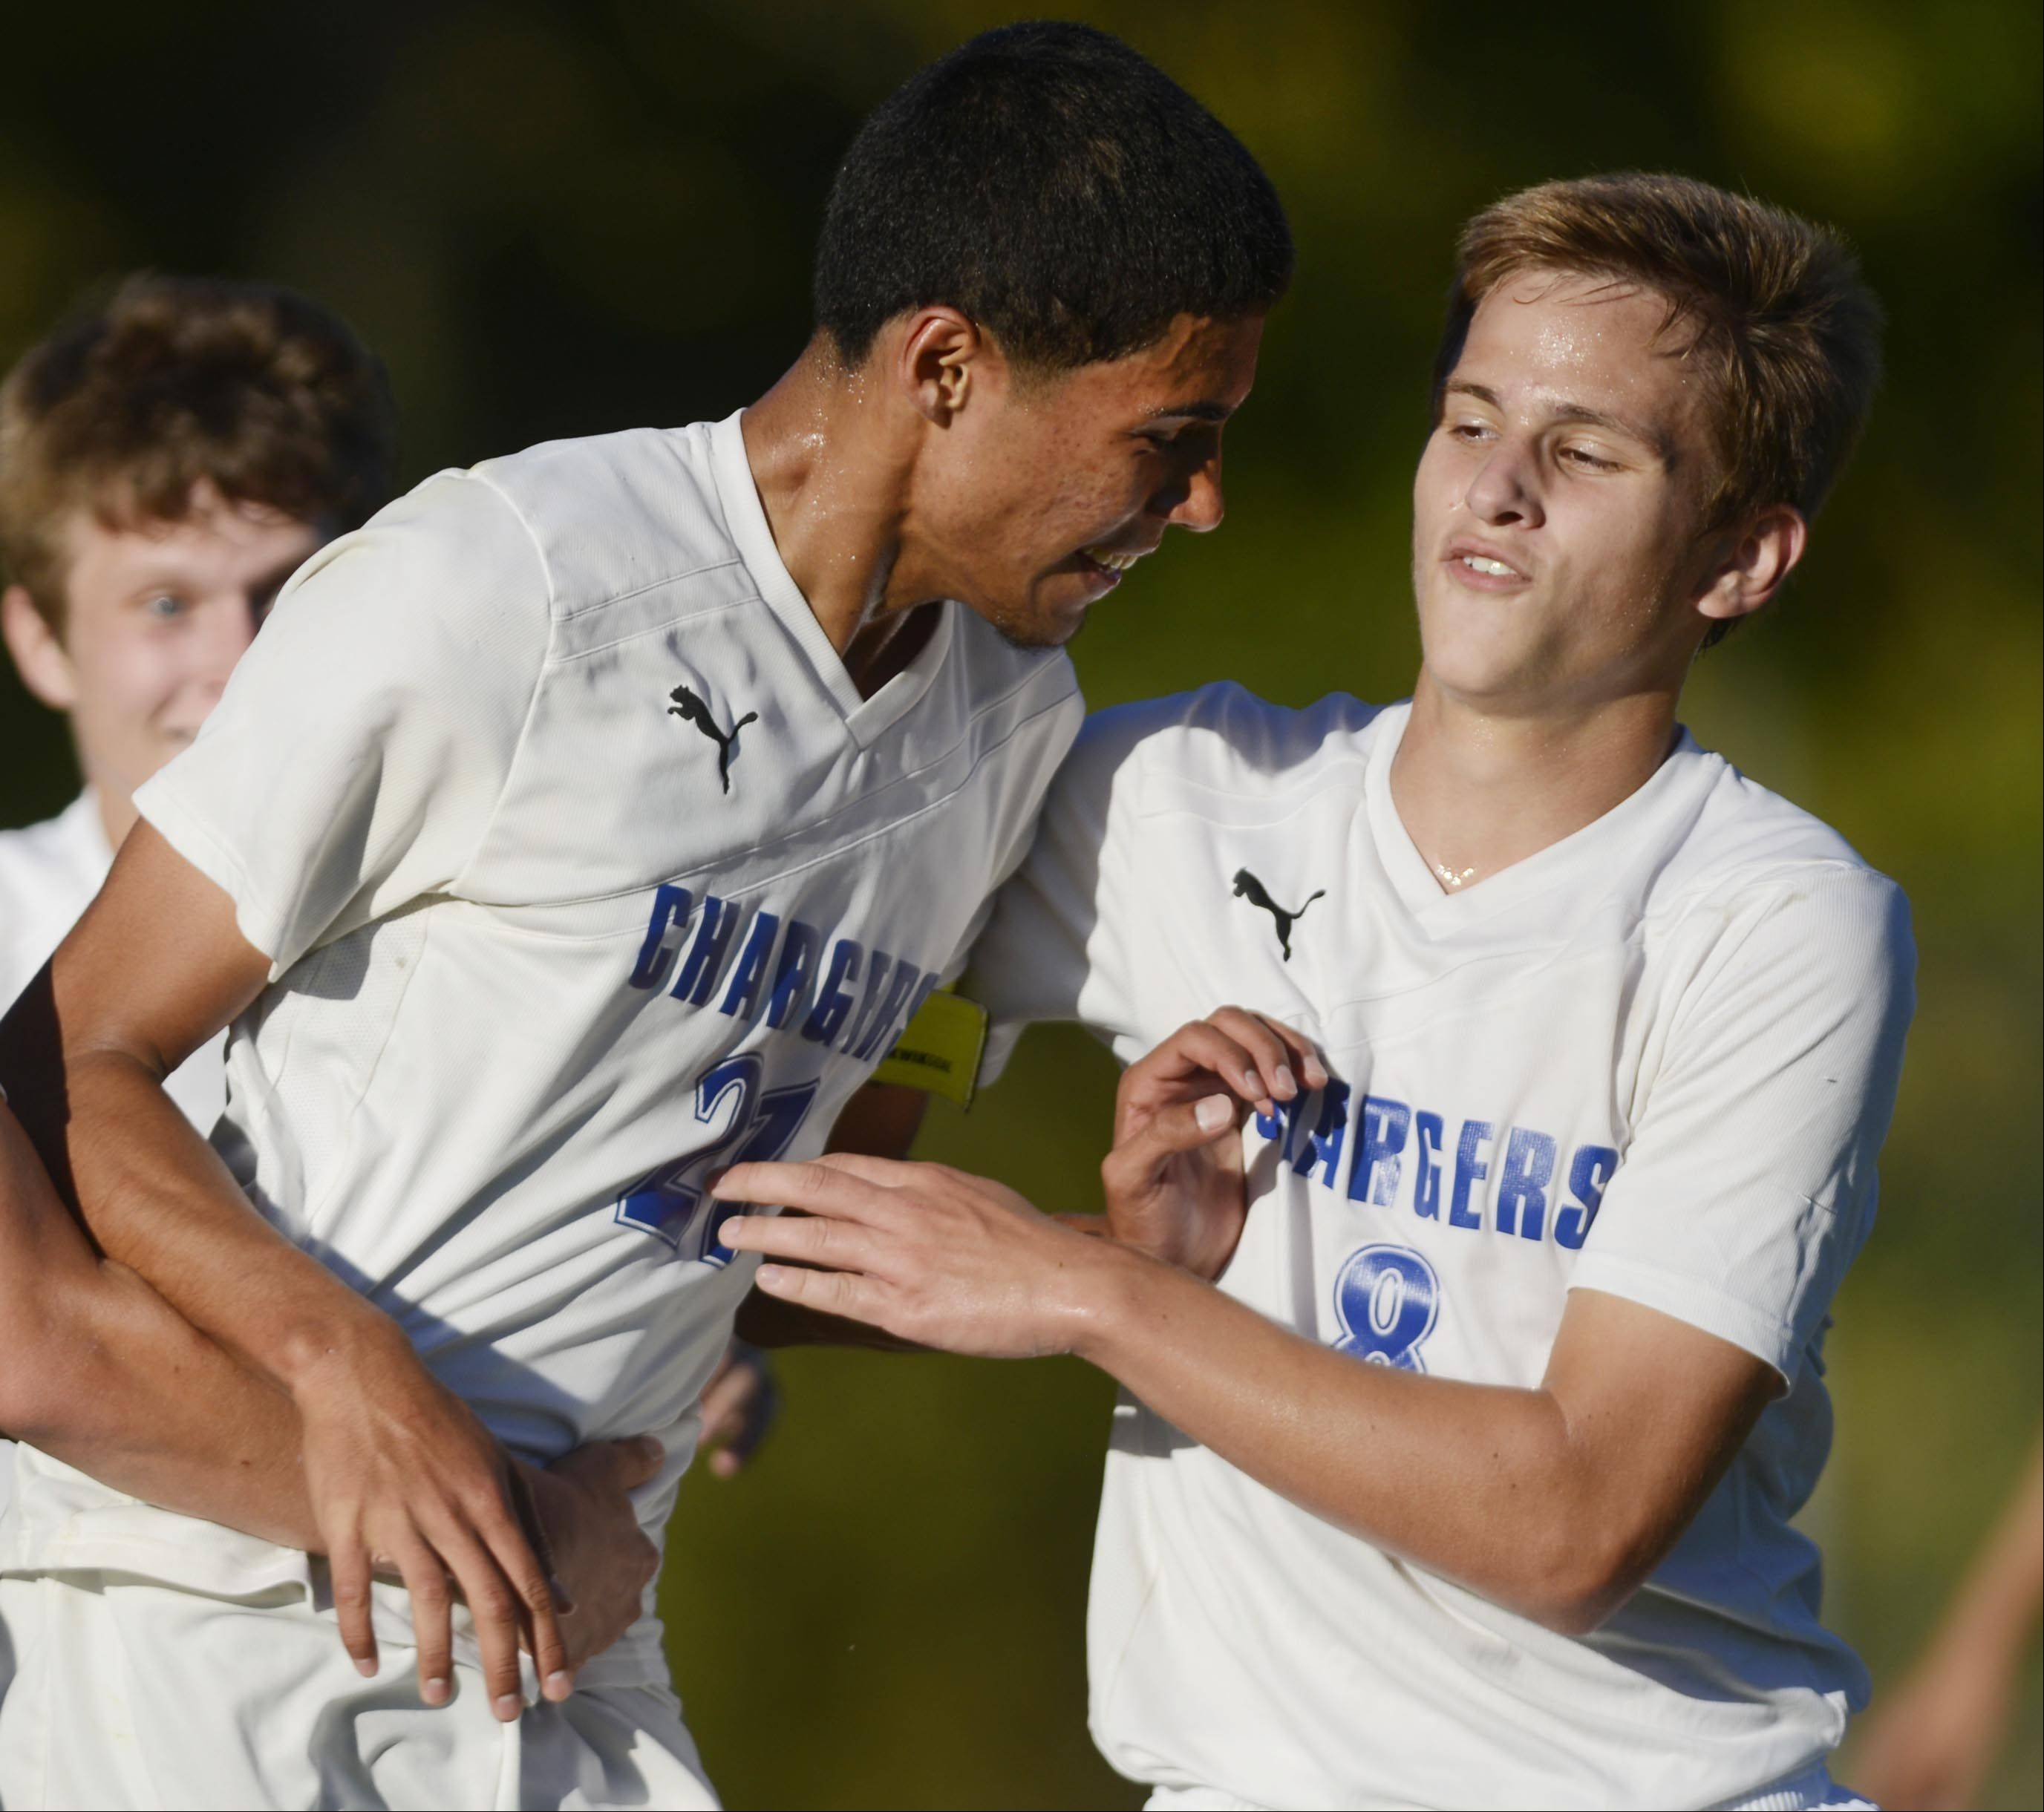 Dundee-Crown's Carlos Ramos is met by teammate Paul Buch after he scored the first Charger goal against Huntley Tuesday in Carpentersville.